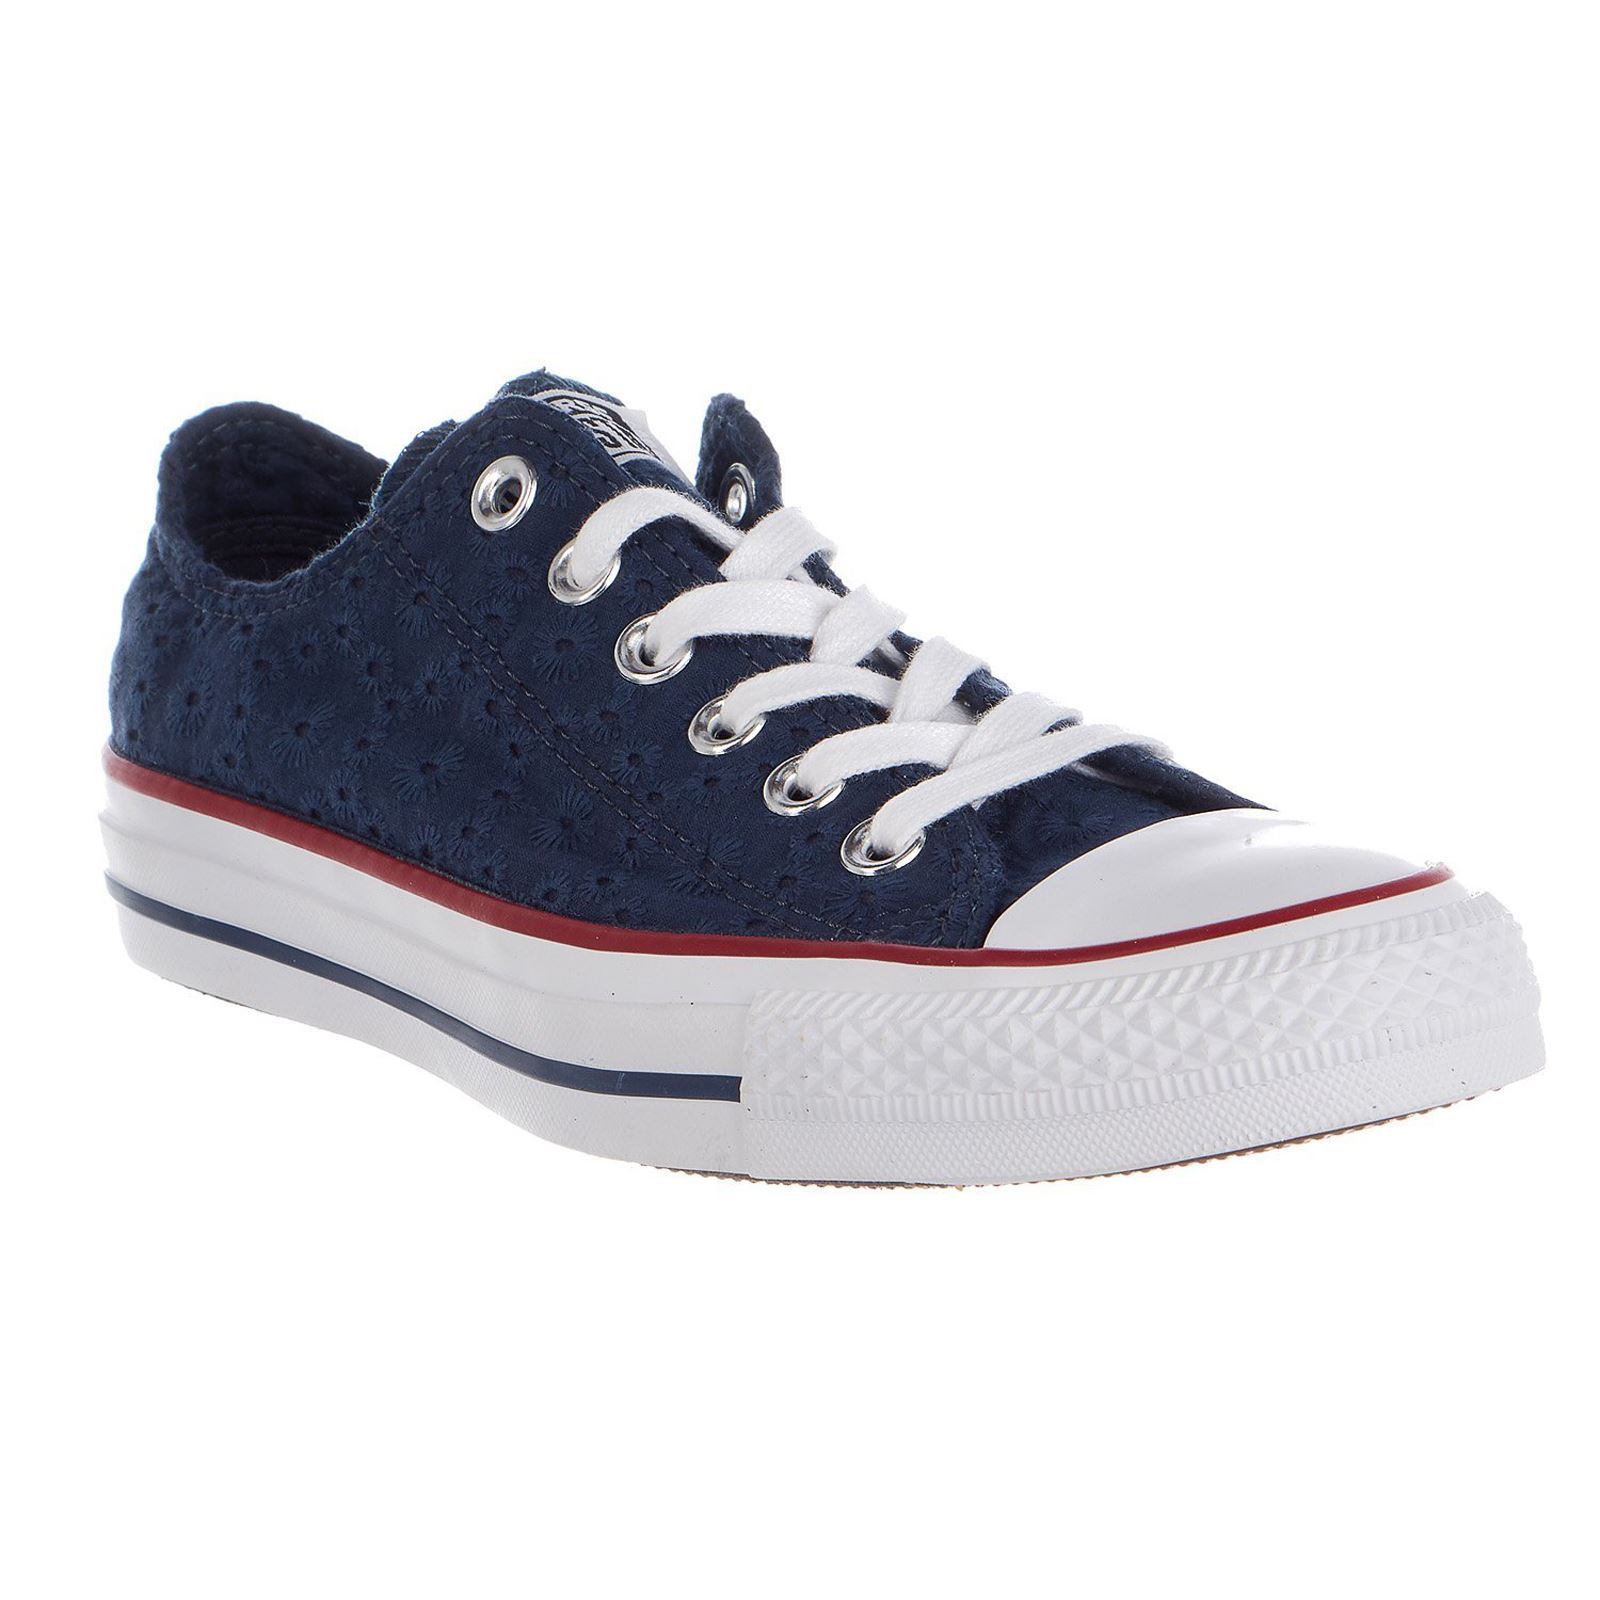 b0fa95c826ac Converse Chuck Taylor All Star Ox Navy Garnet Womens Canvas Trainers  Sneakers